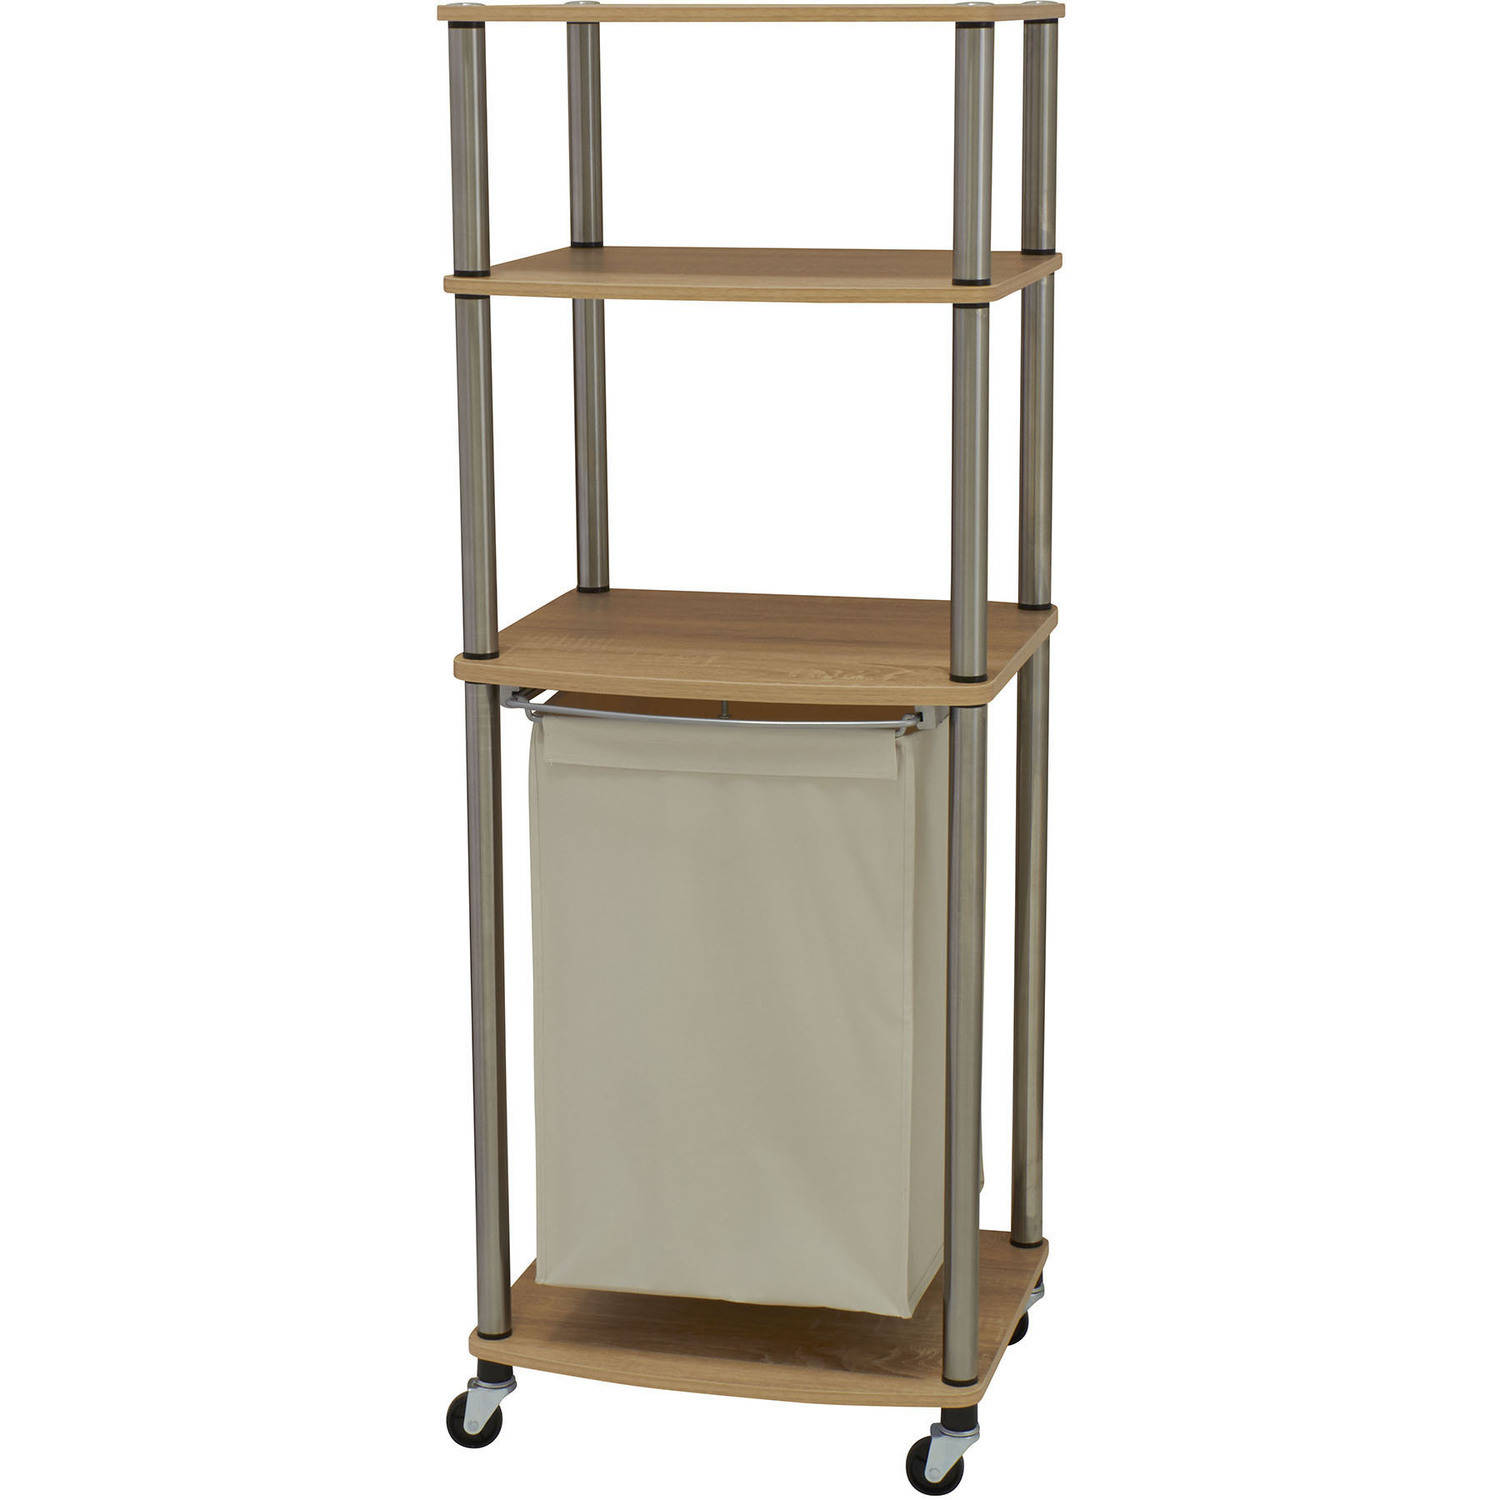 household essentials laundry hamper storage cart - Laundry Carts